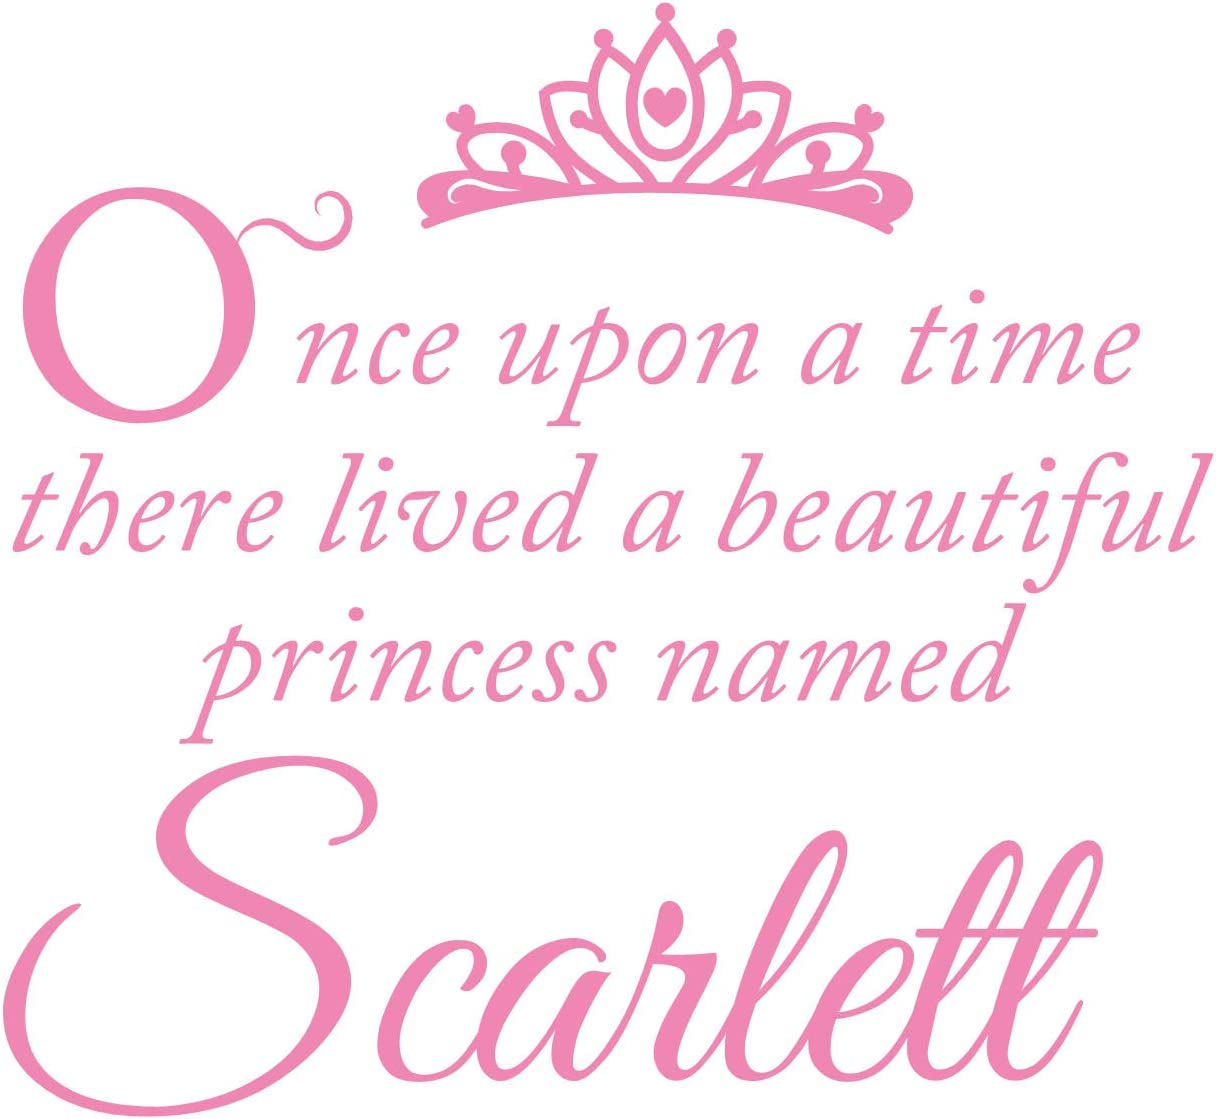 Once Upon A Time Wall Decal is a Vinyl Wall Decal Displaying a Girl Name Art, Great Sign, Accessories or Decoration for a Little or Big Girl Room, Similar to Sticker or Poster - Soft Pink